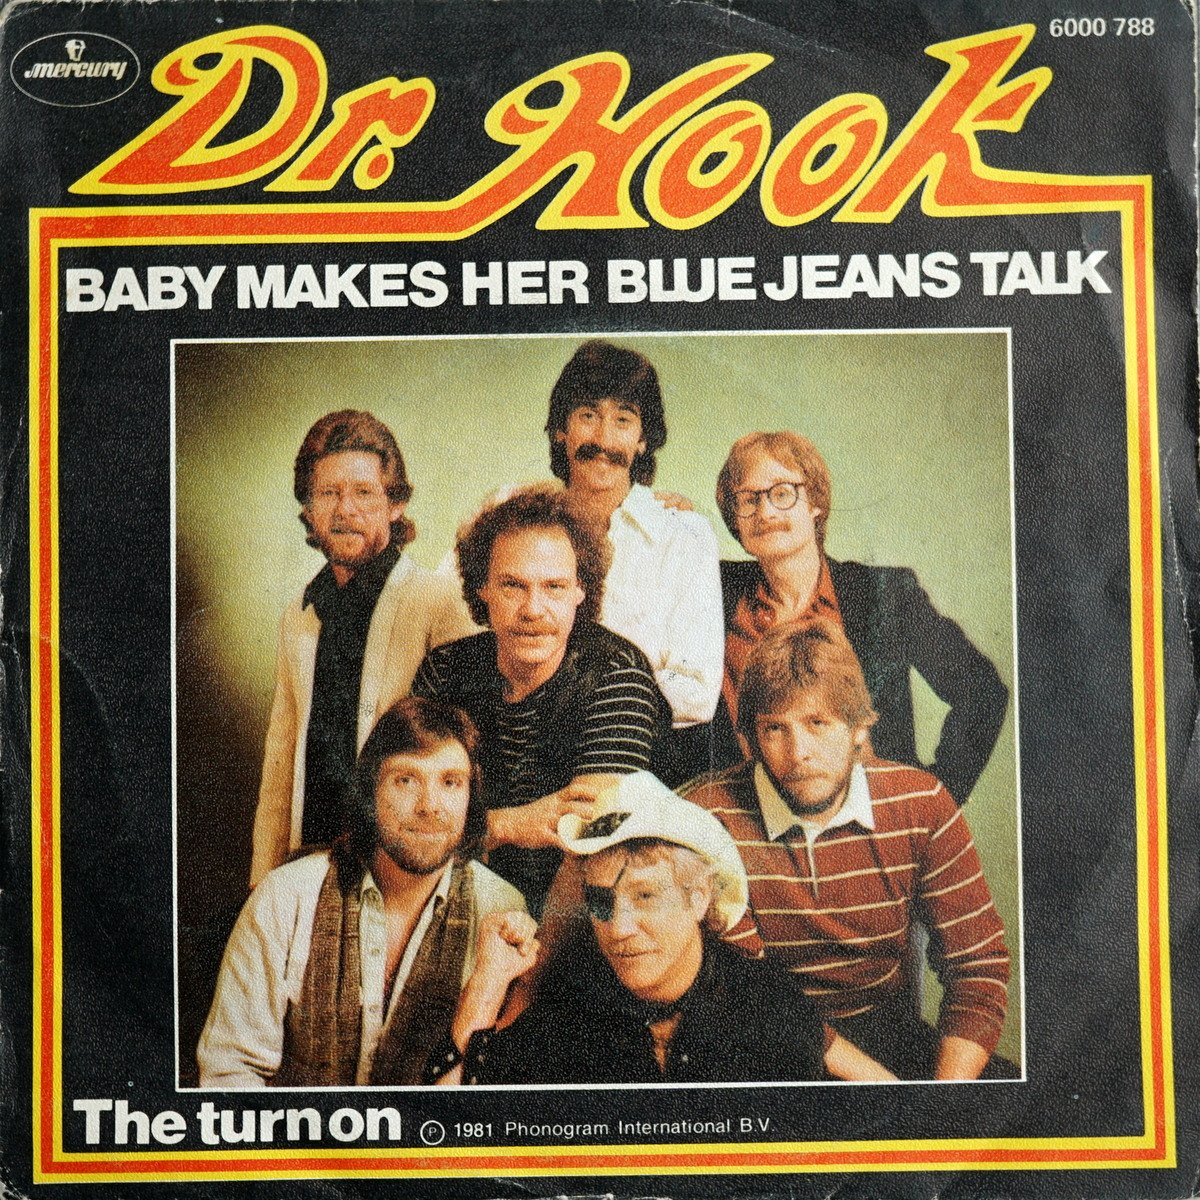 S PD A1 - 6000 788 - Baby Make Her Blue Jeans Talk - 1982 - ES